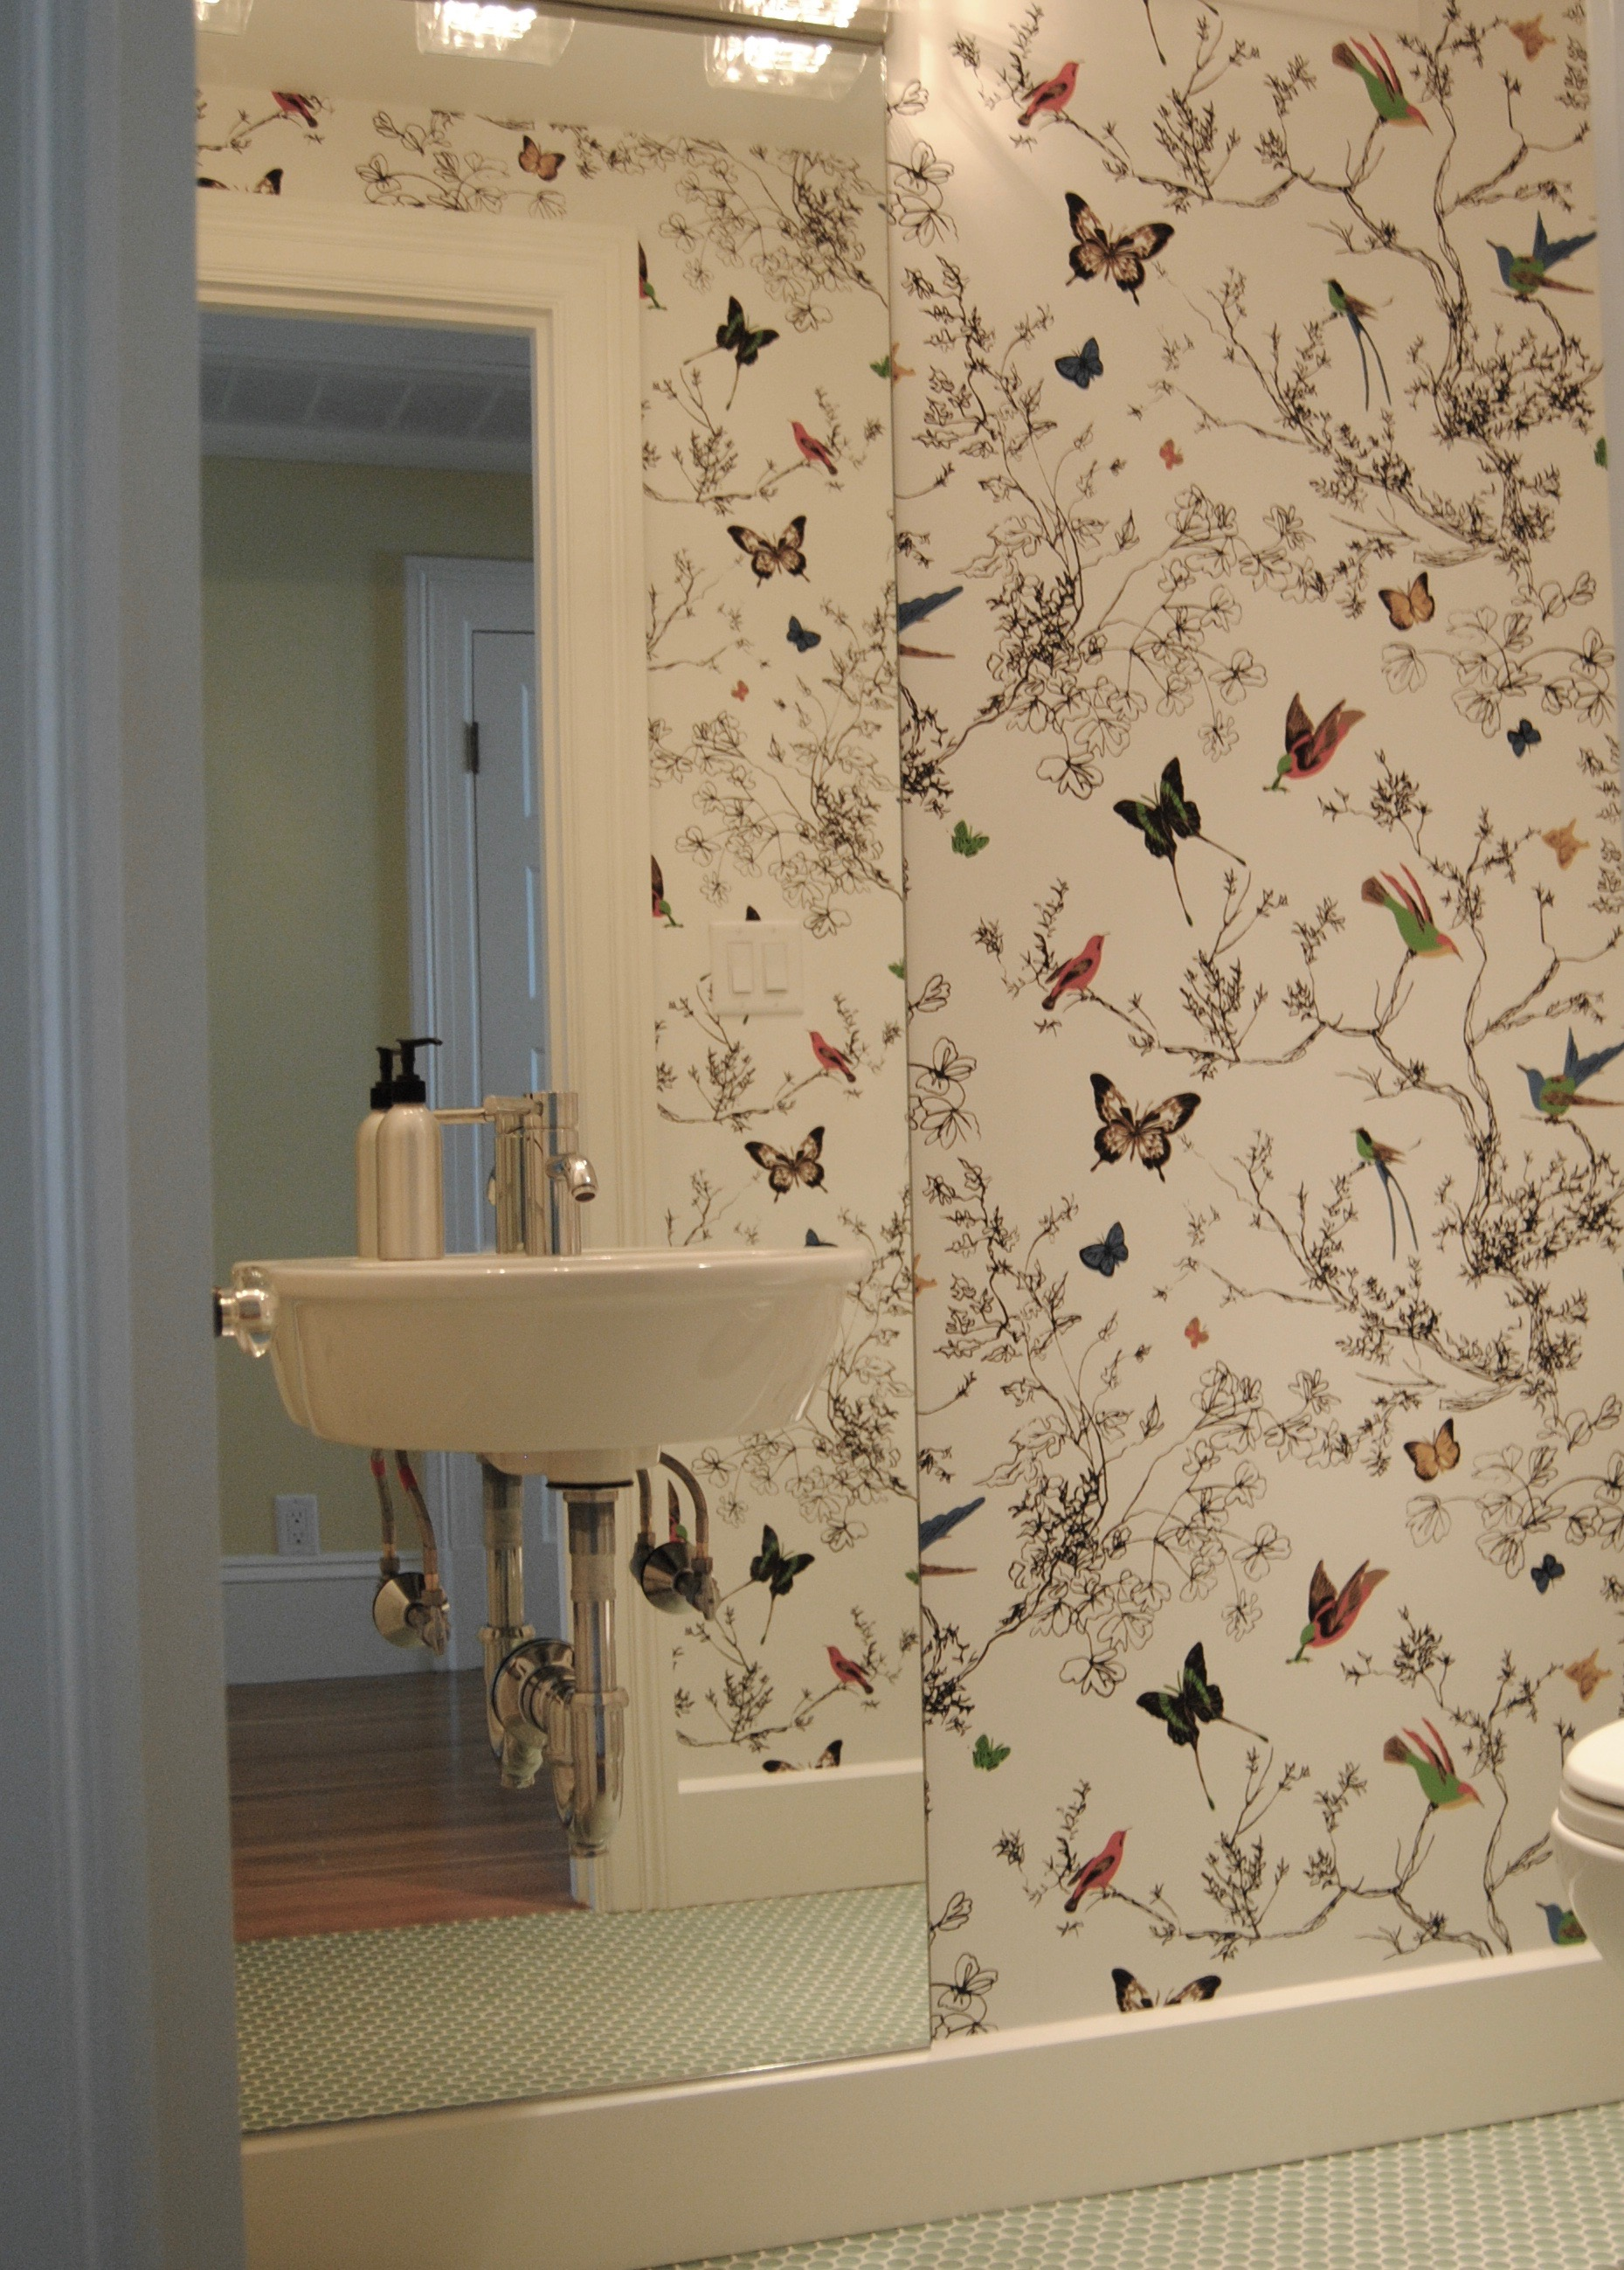 Powder Room with birds and butterflies wallpaper